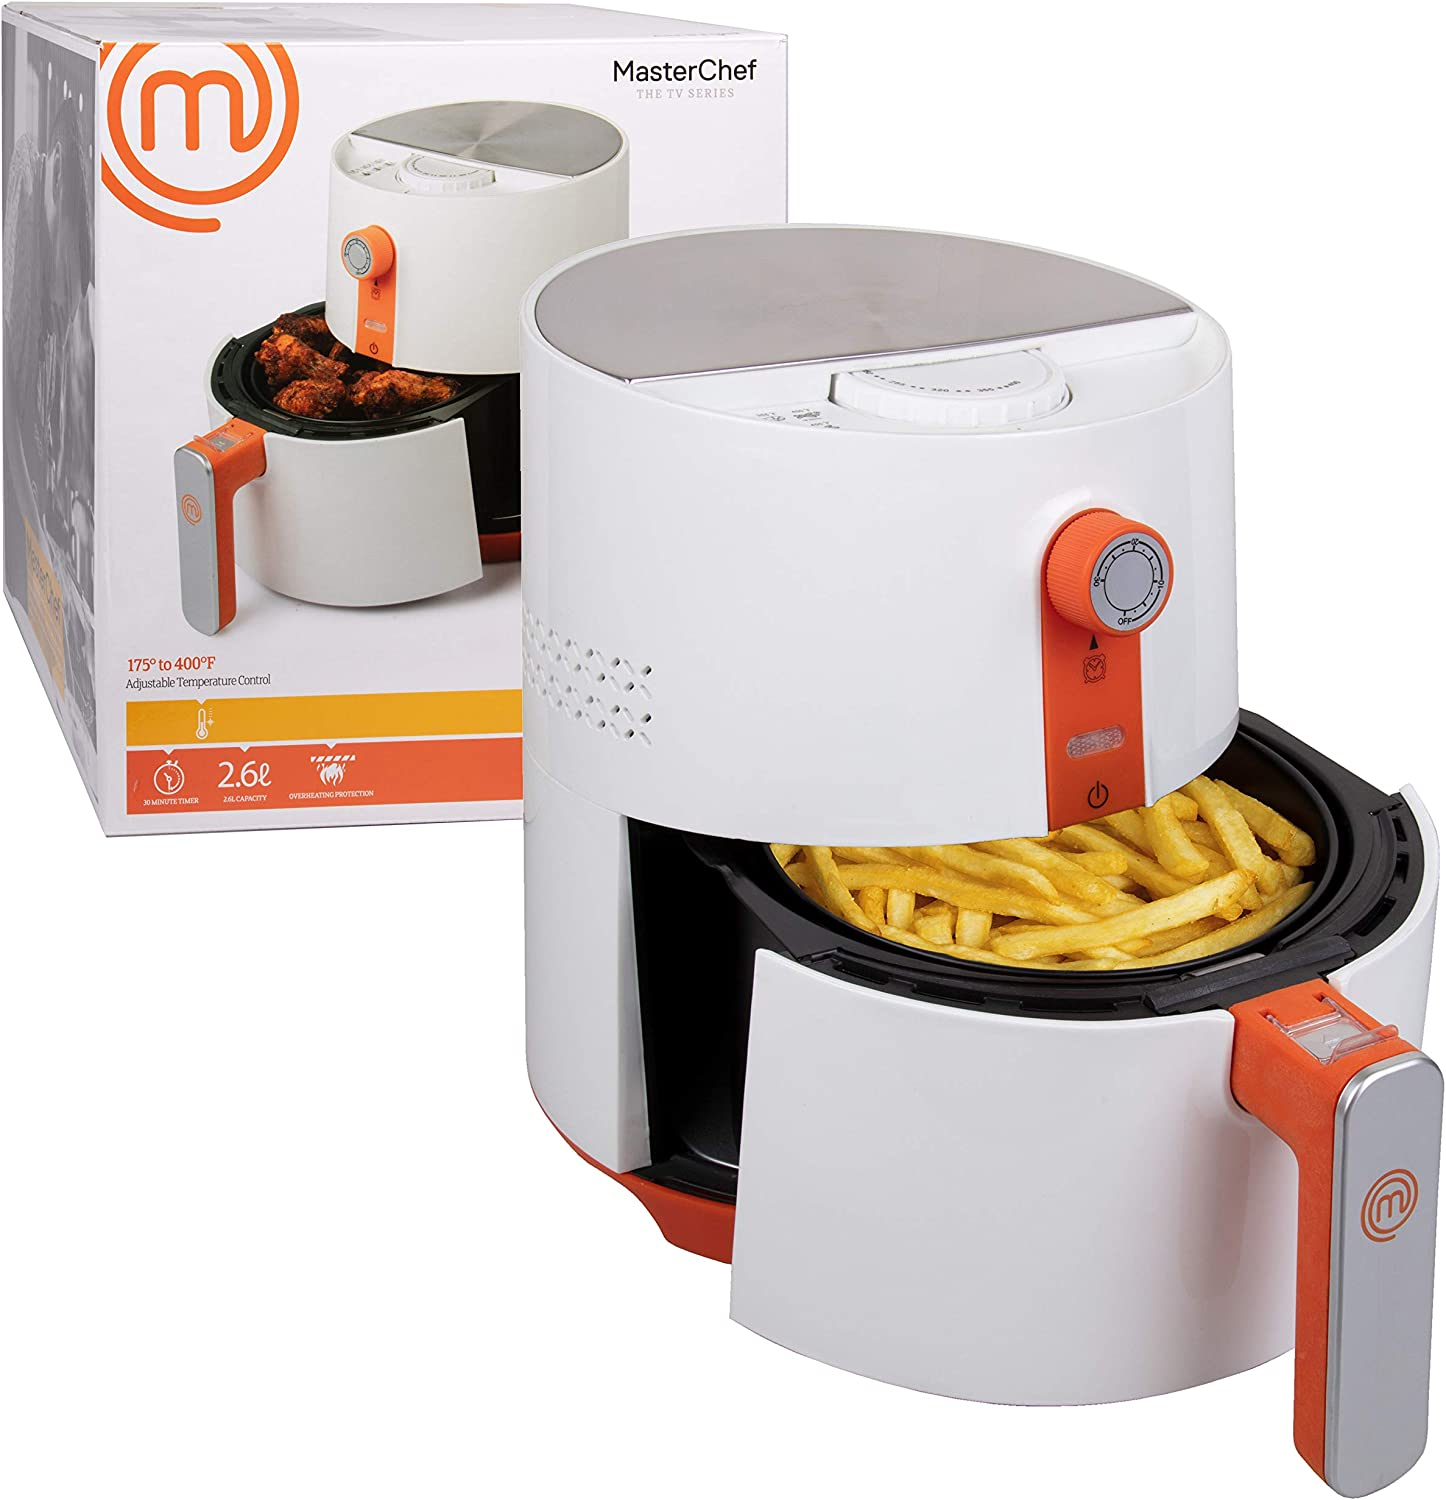 MasterChef Air Fryer- 3.6Q Non-stick Electric Cooker w FREE Recipe Booklet- Includes Timer, Auto Shut Off, Basket Lock and Adjustable Temperature Control